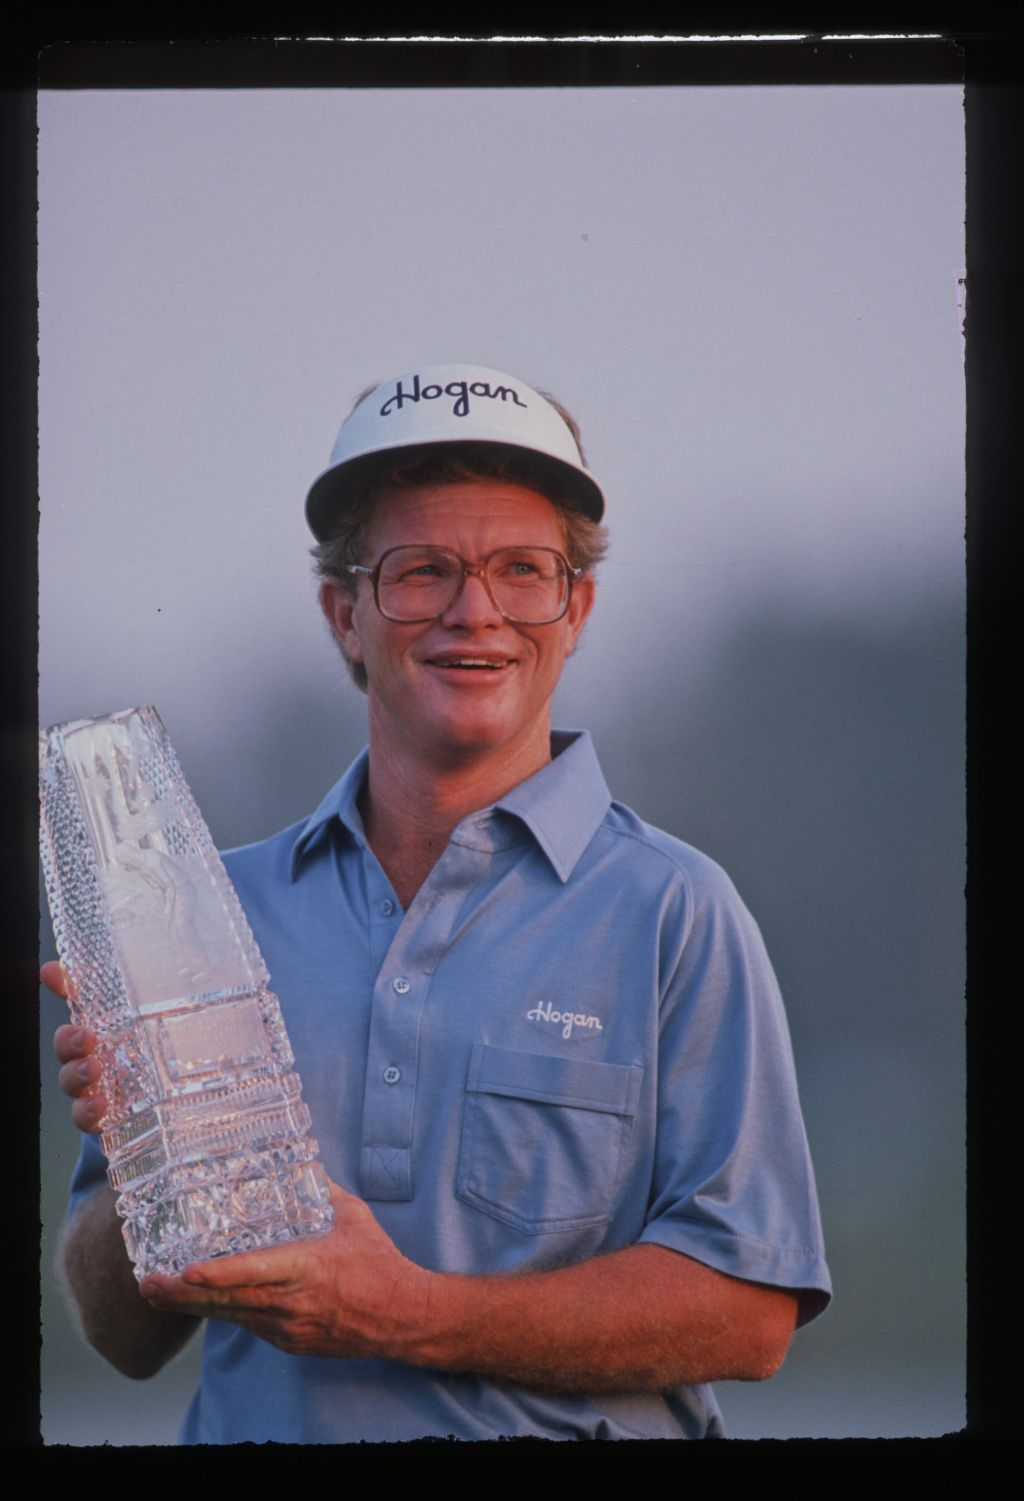 Winner Tom Kite lifts the trophy at the 1989 Players Championship at Sawgrass